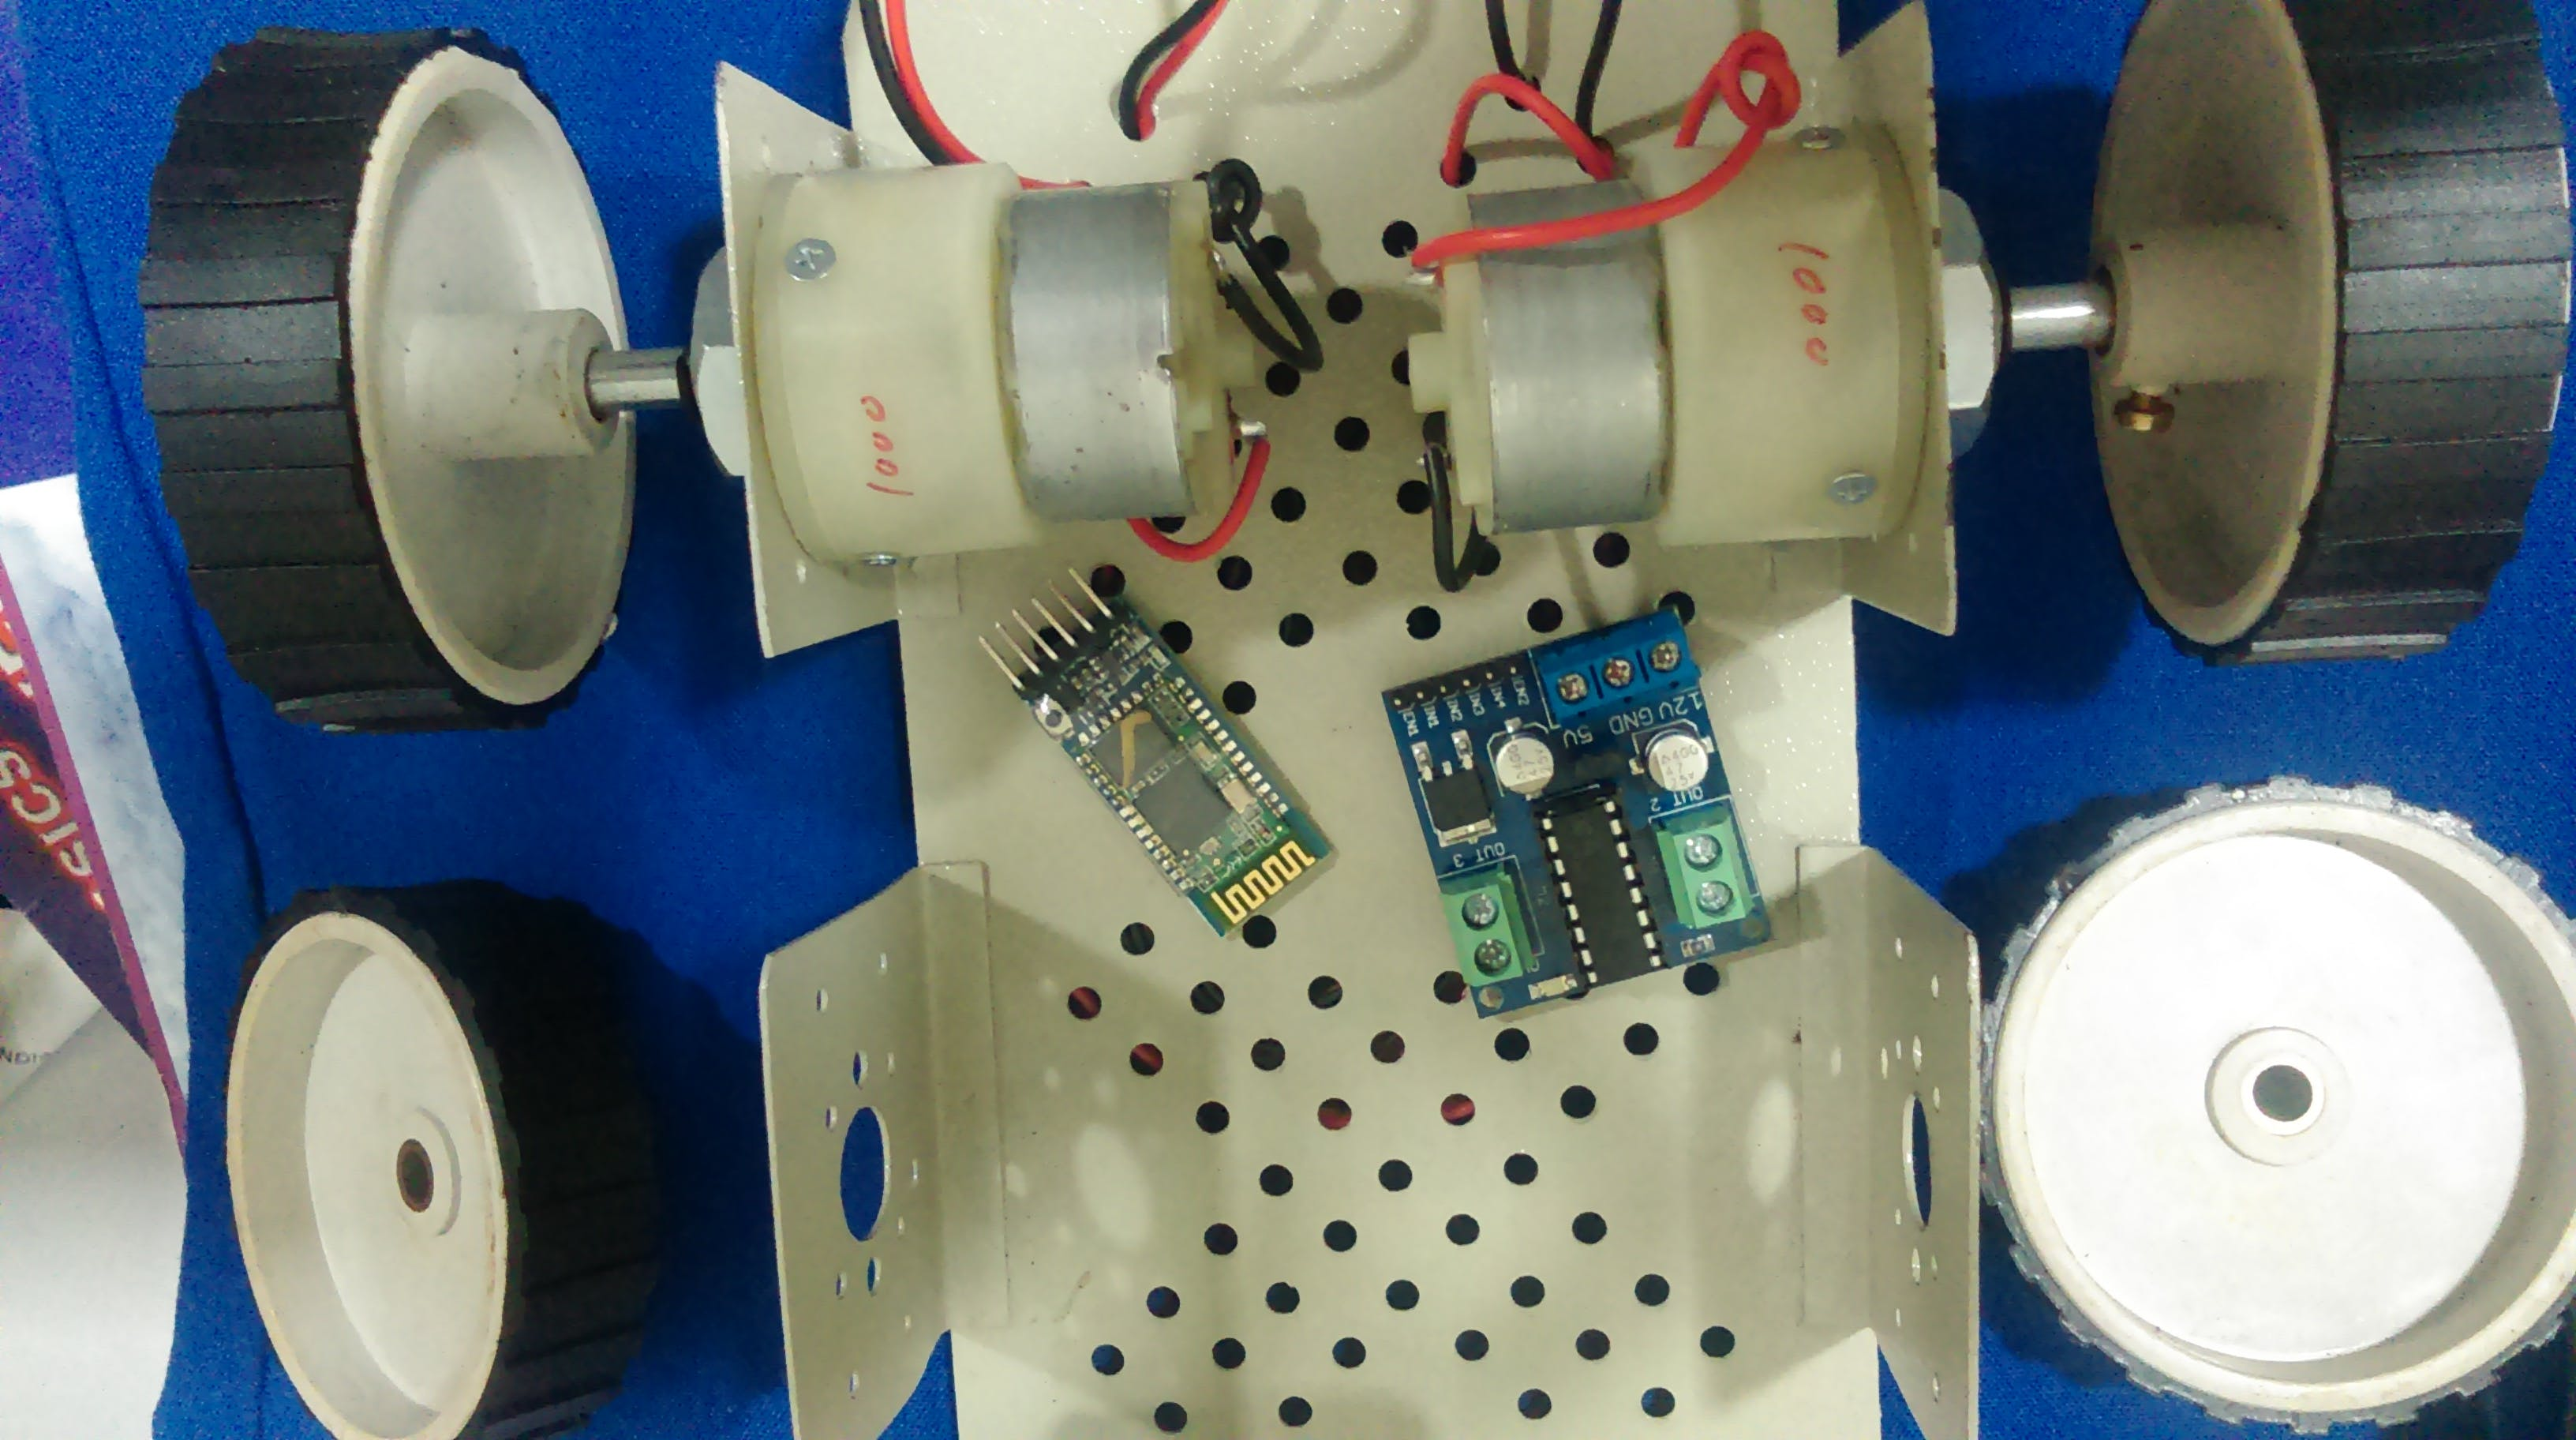 Robotic Car Controlled over Bluetooth by Andriod Phone